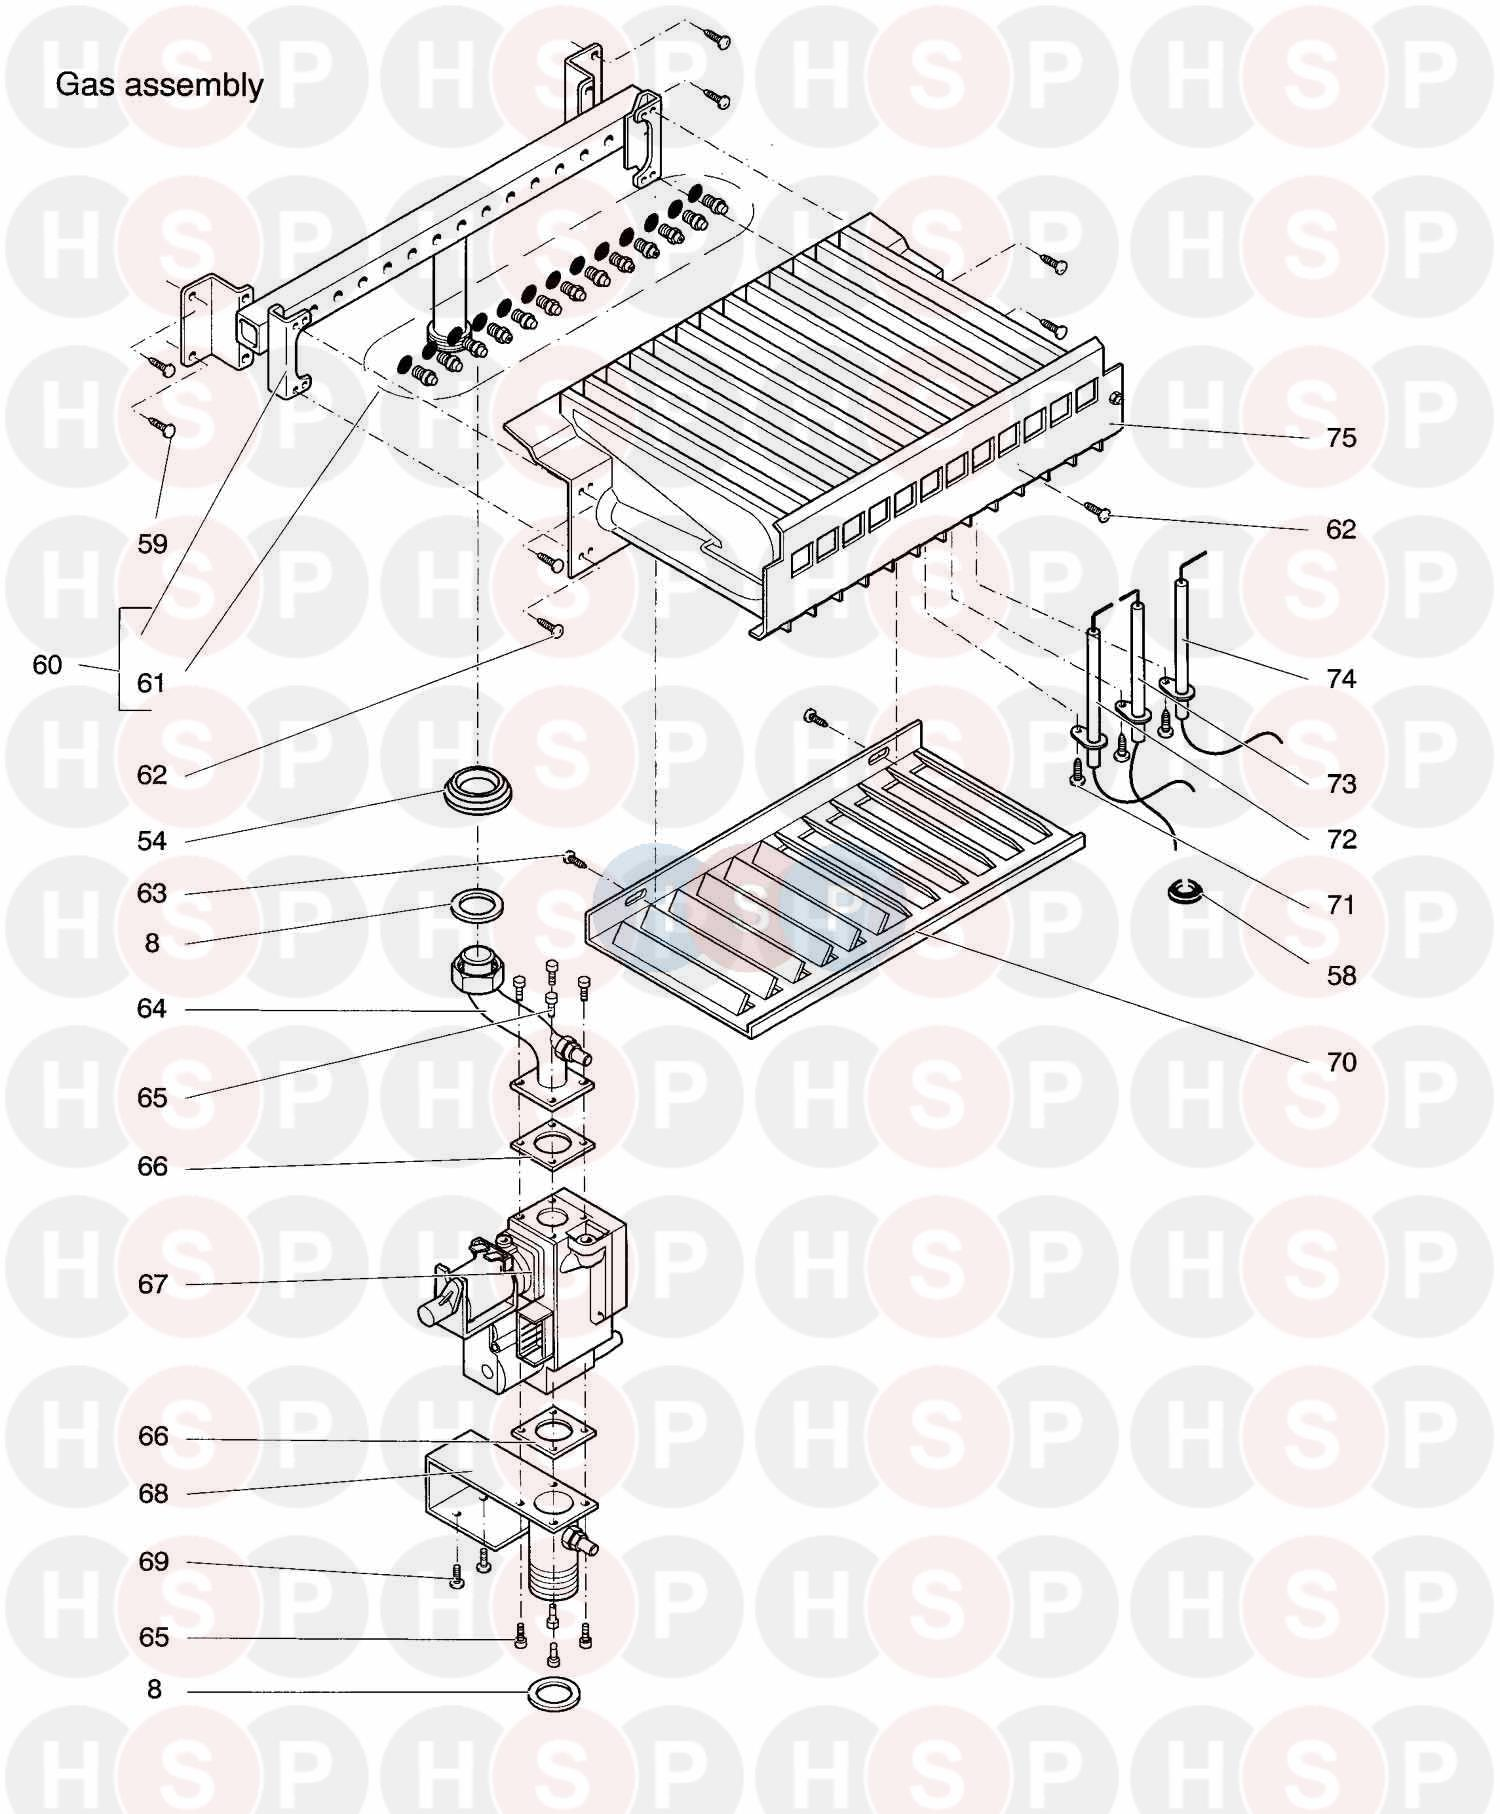 biasi prisma 24se  1998   gas assembly  diagram